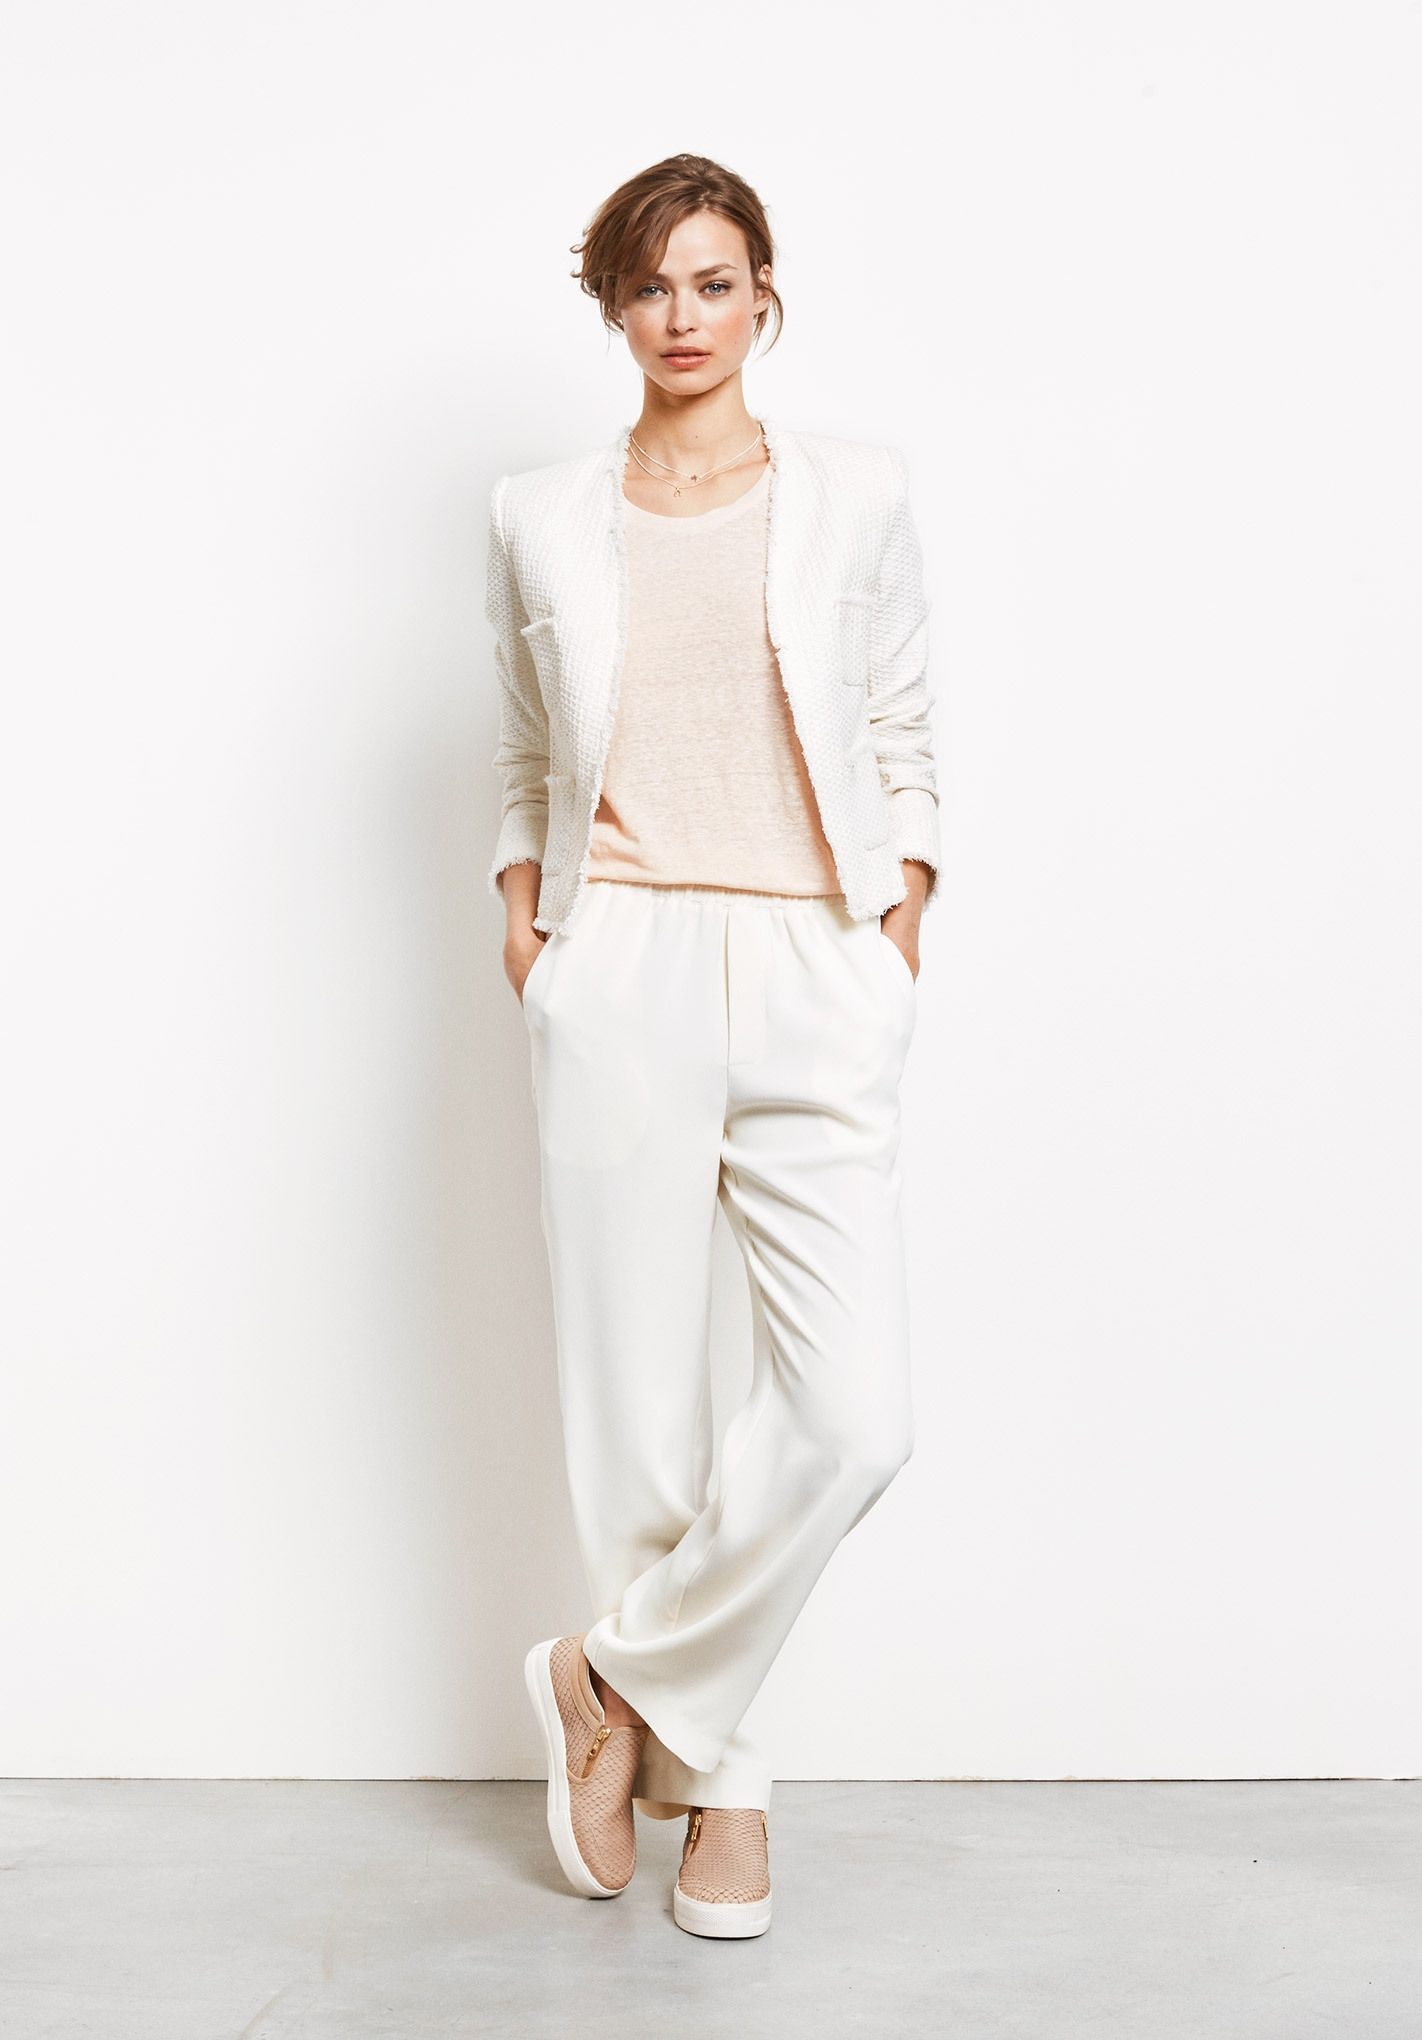 The epitome of chic dressing, this tailored jacket will smarten any outfit instantly. A minimal style that's timeless.